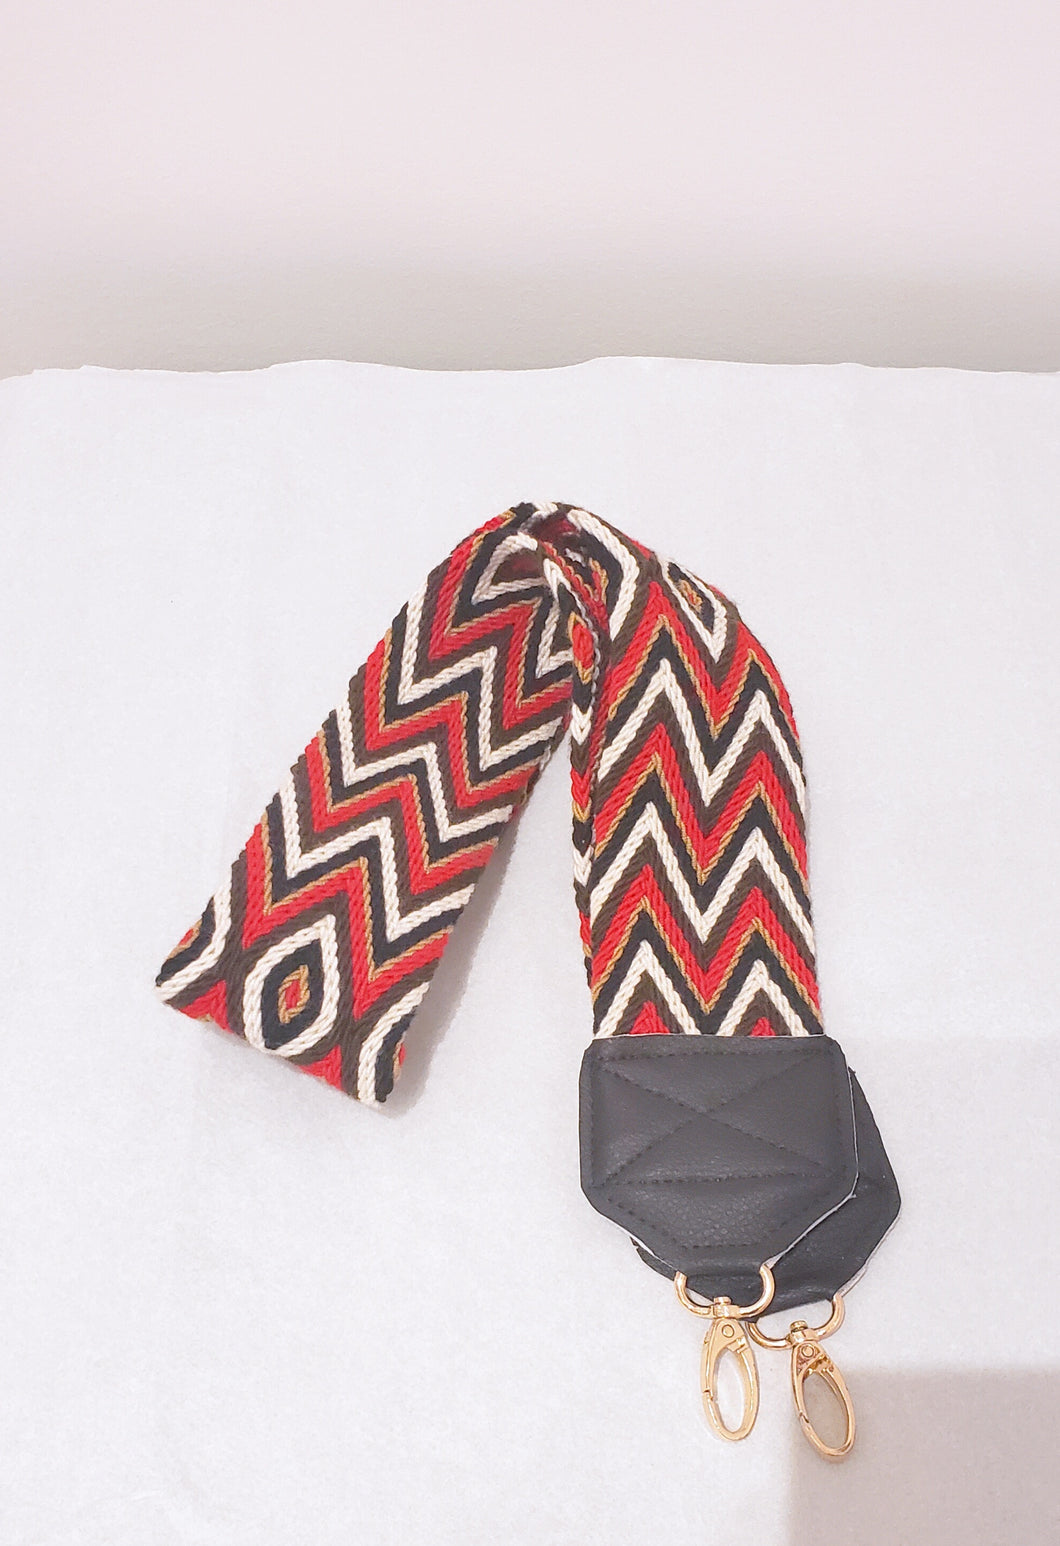 Red, Brown, Black, and Cream Lines Handmade Wayuu Bag Strap - Wuitusu